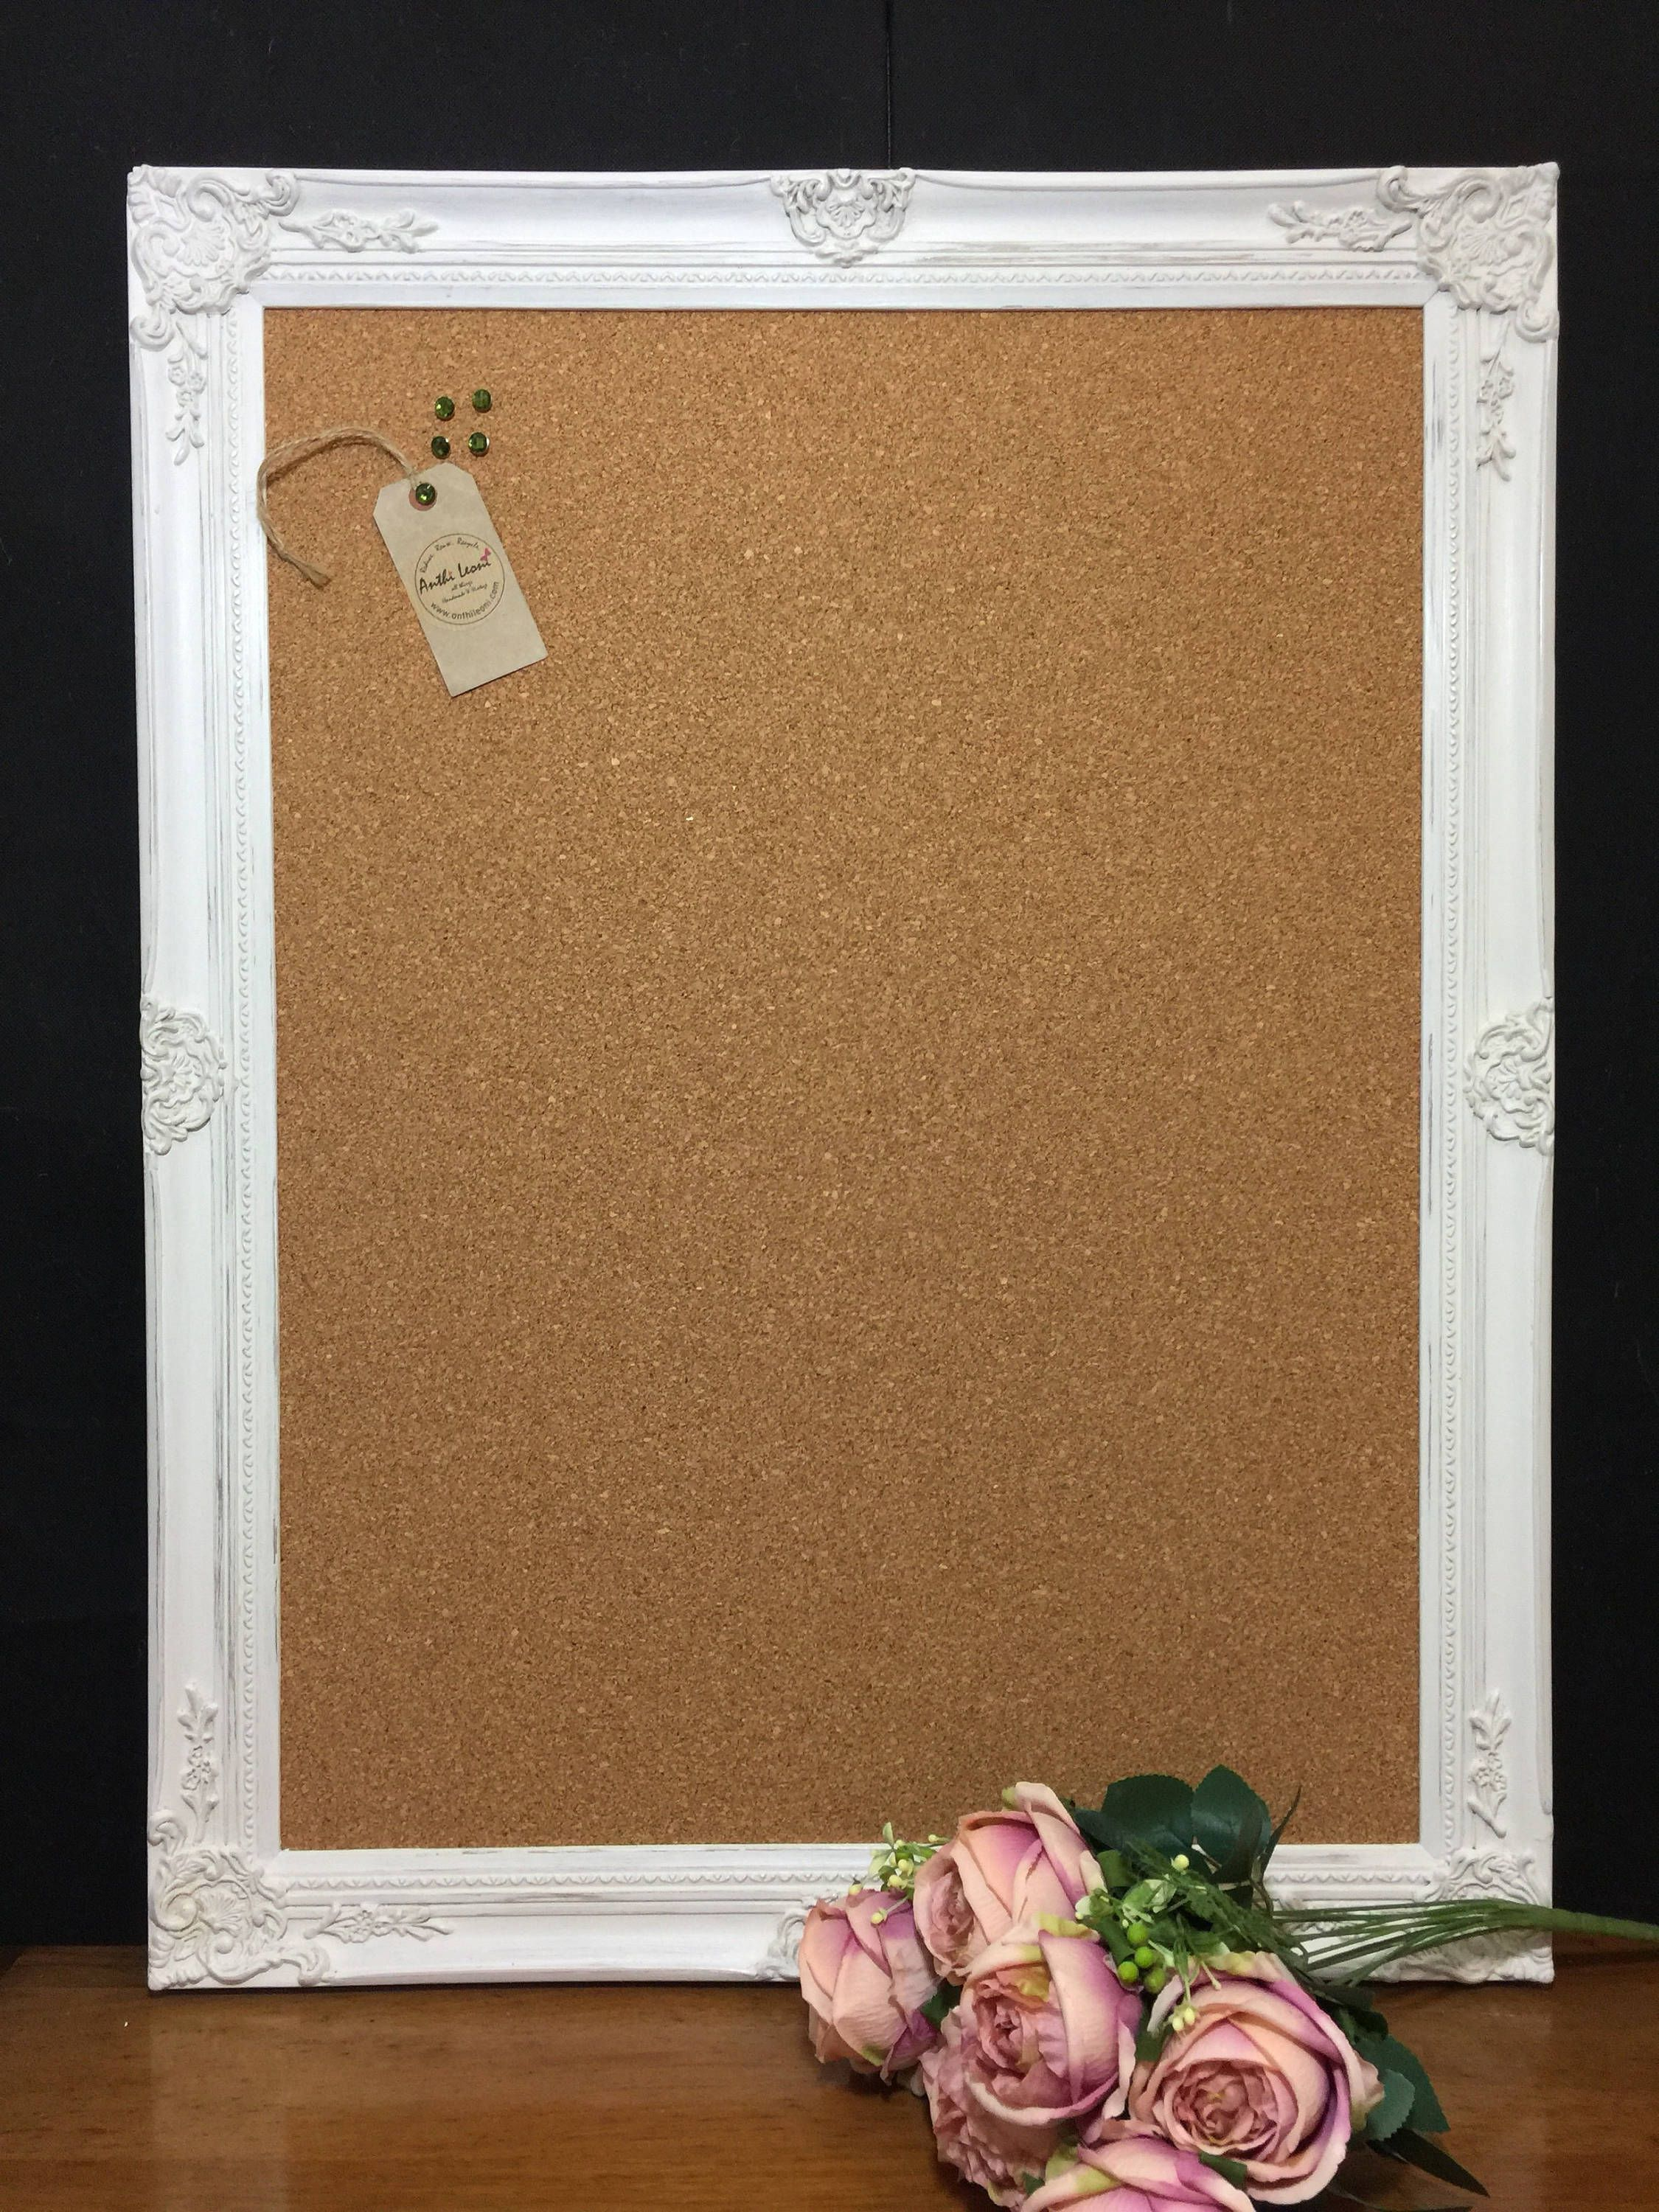 Shabby Chic Style Vision Board Extra Large Pin Ornate Corkboard Notice Framed Message Wedding Sign By